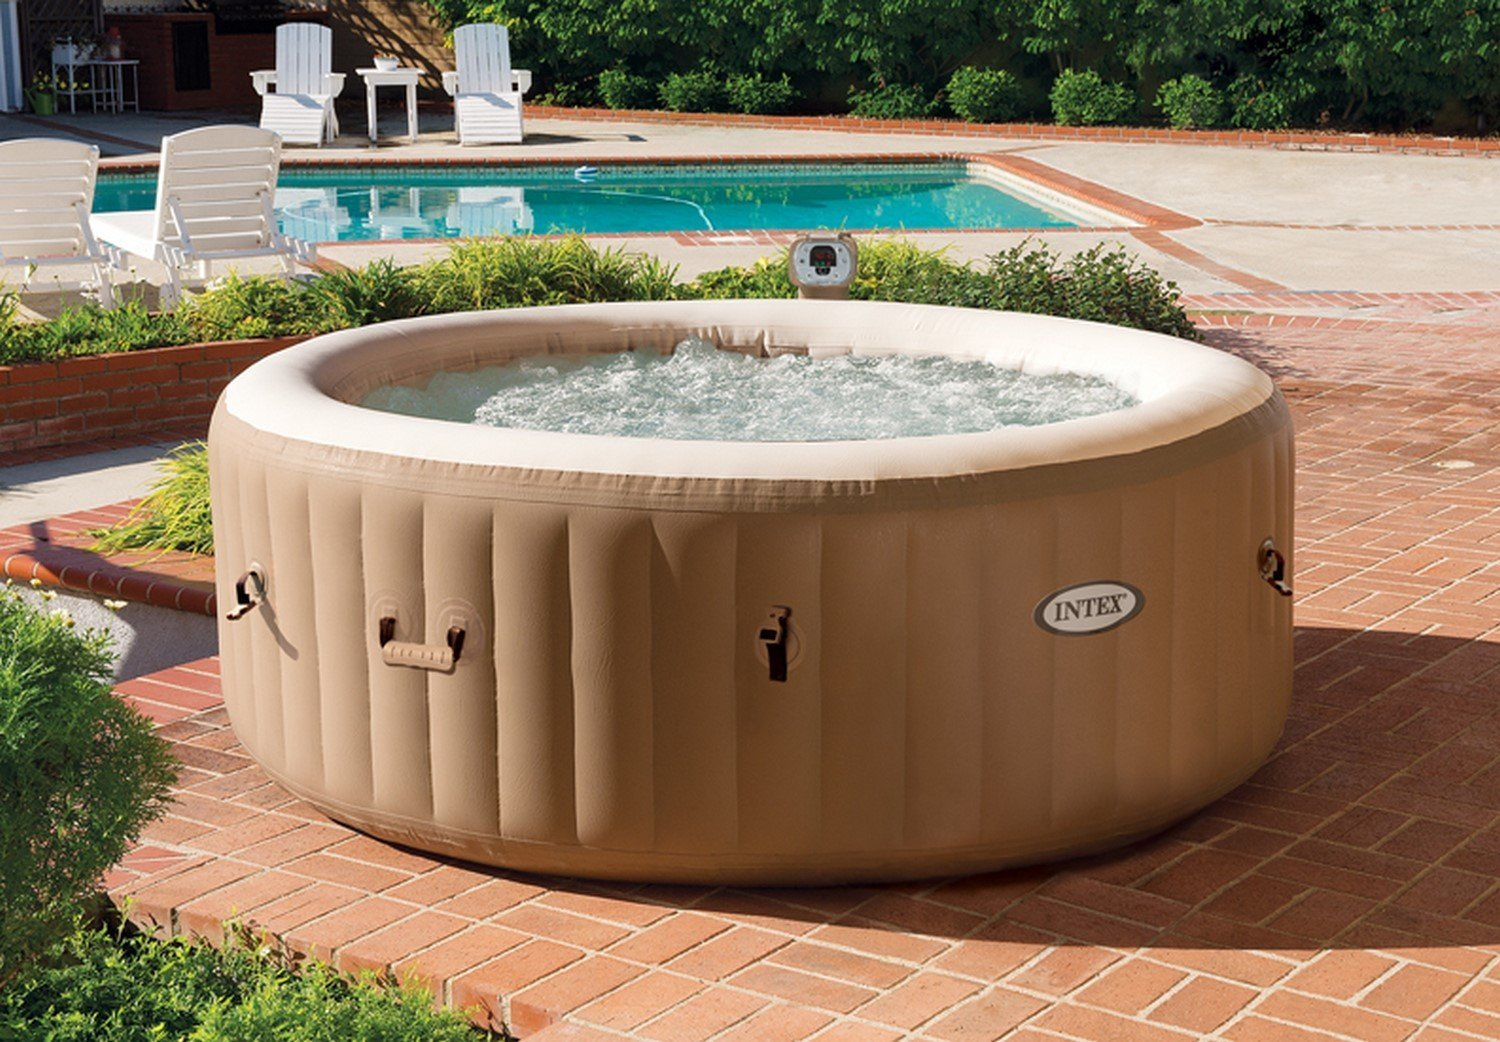 intex purespa bubble therapy portable spa inflatable hot tub - Saltwater Hot Tub